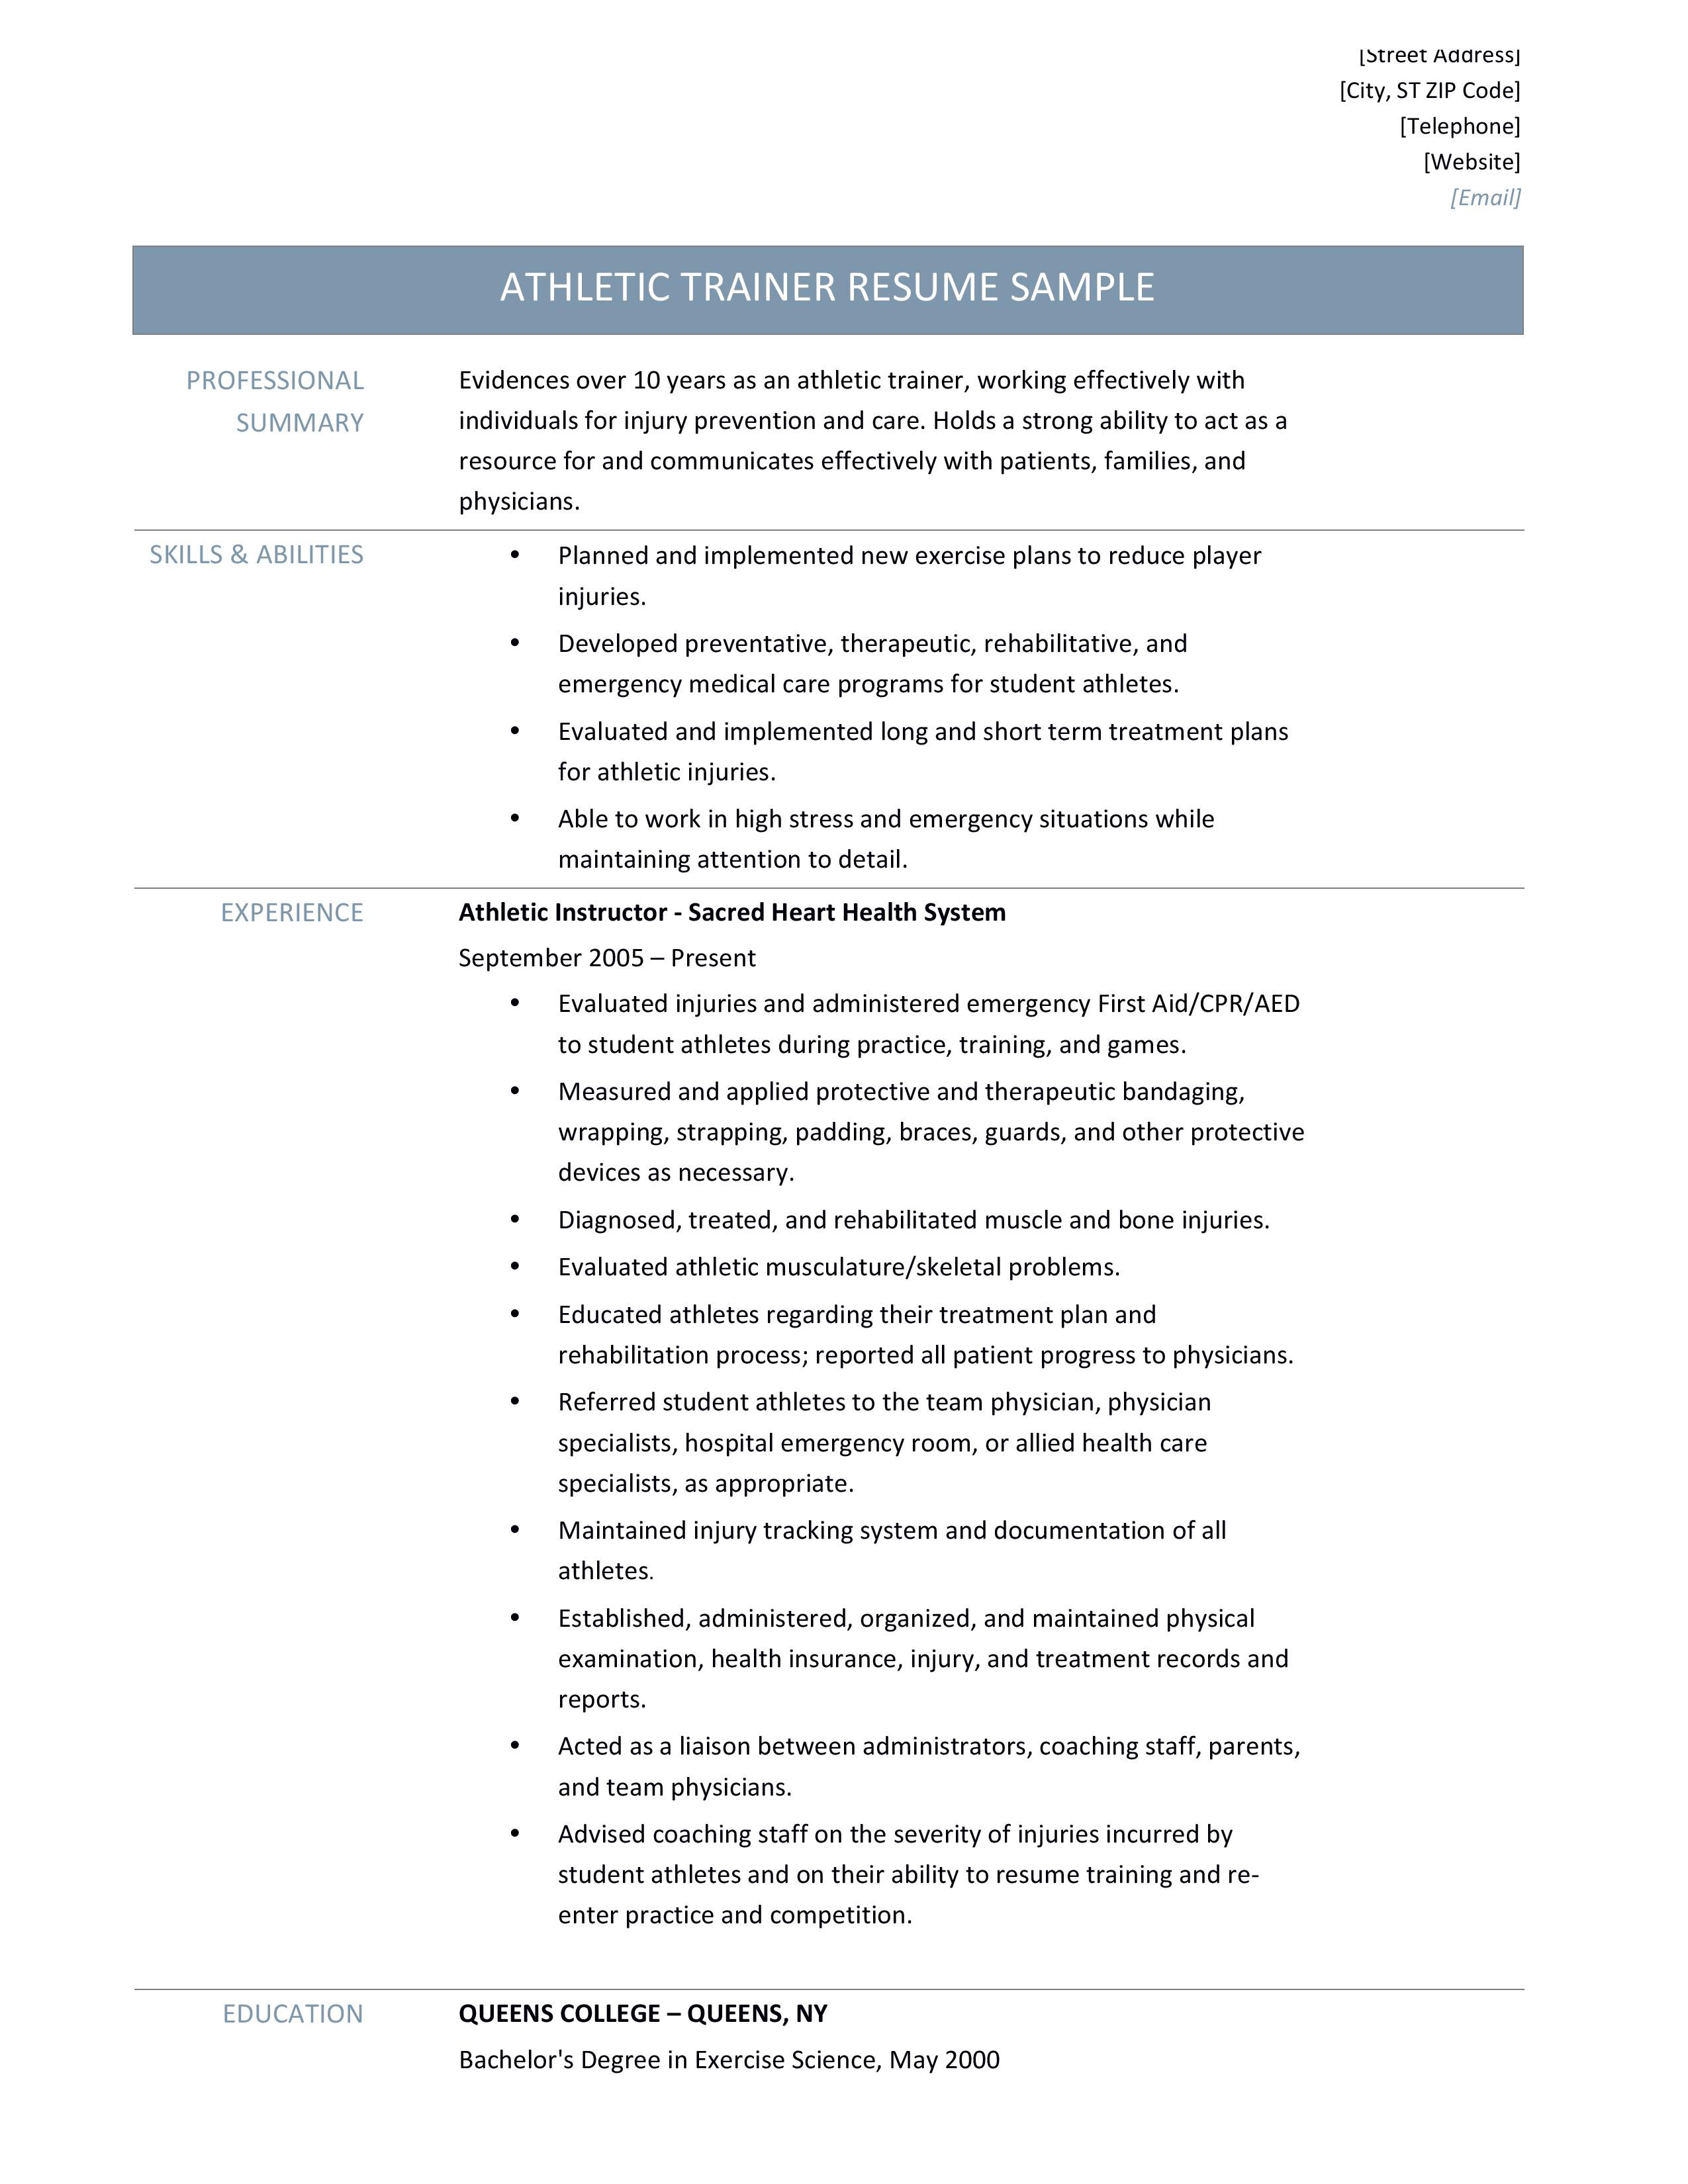 Athletic Trainer Resume Samples Tips And Templates